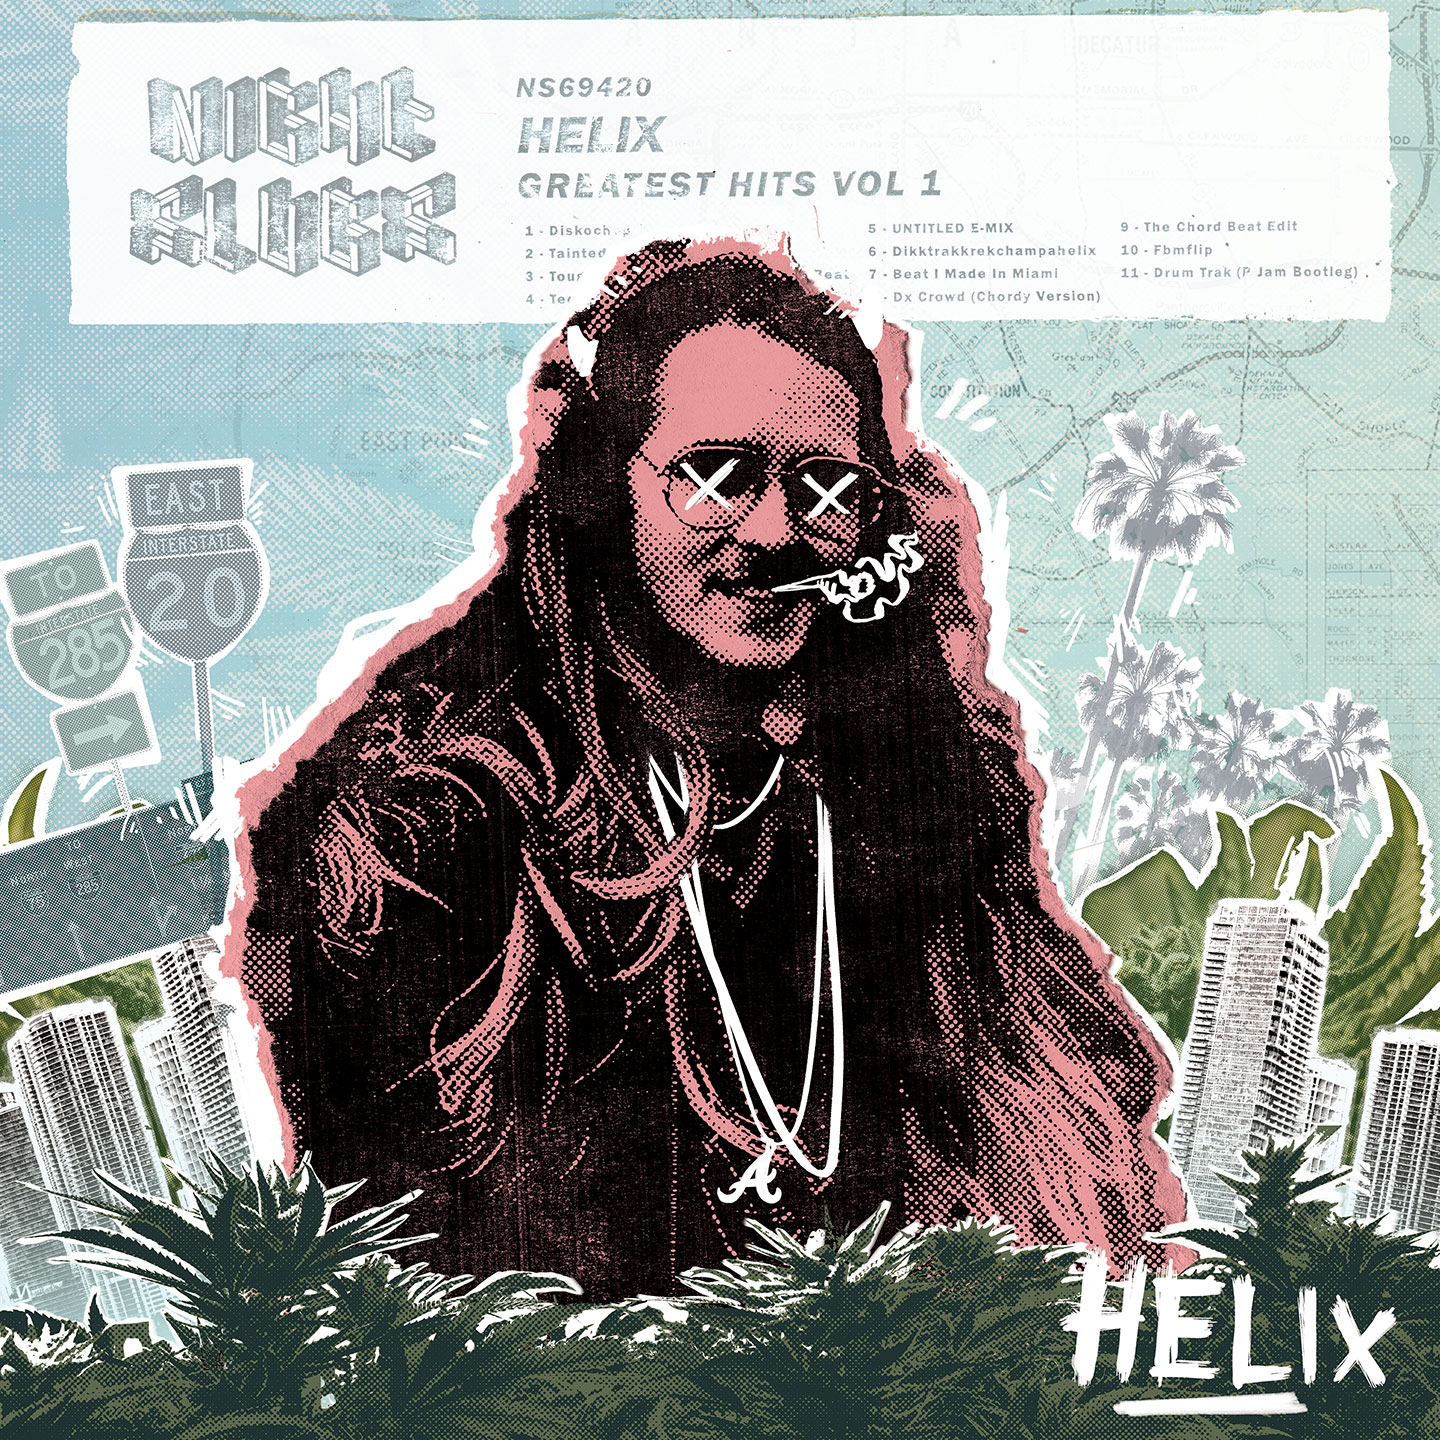 Helix - Greatest Hits Vol 1